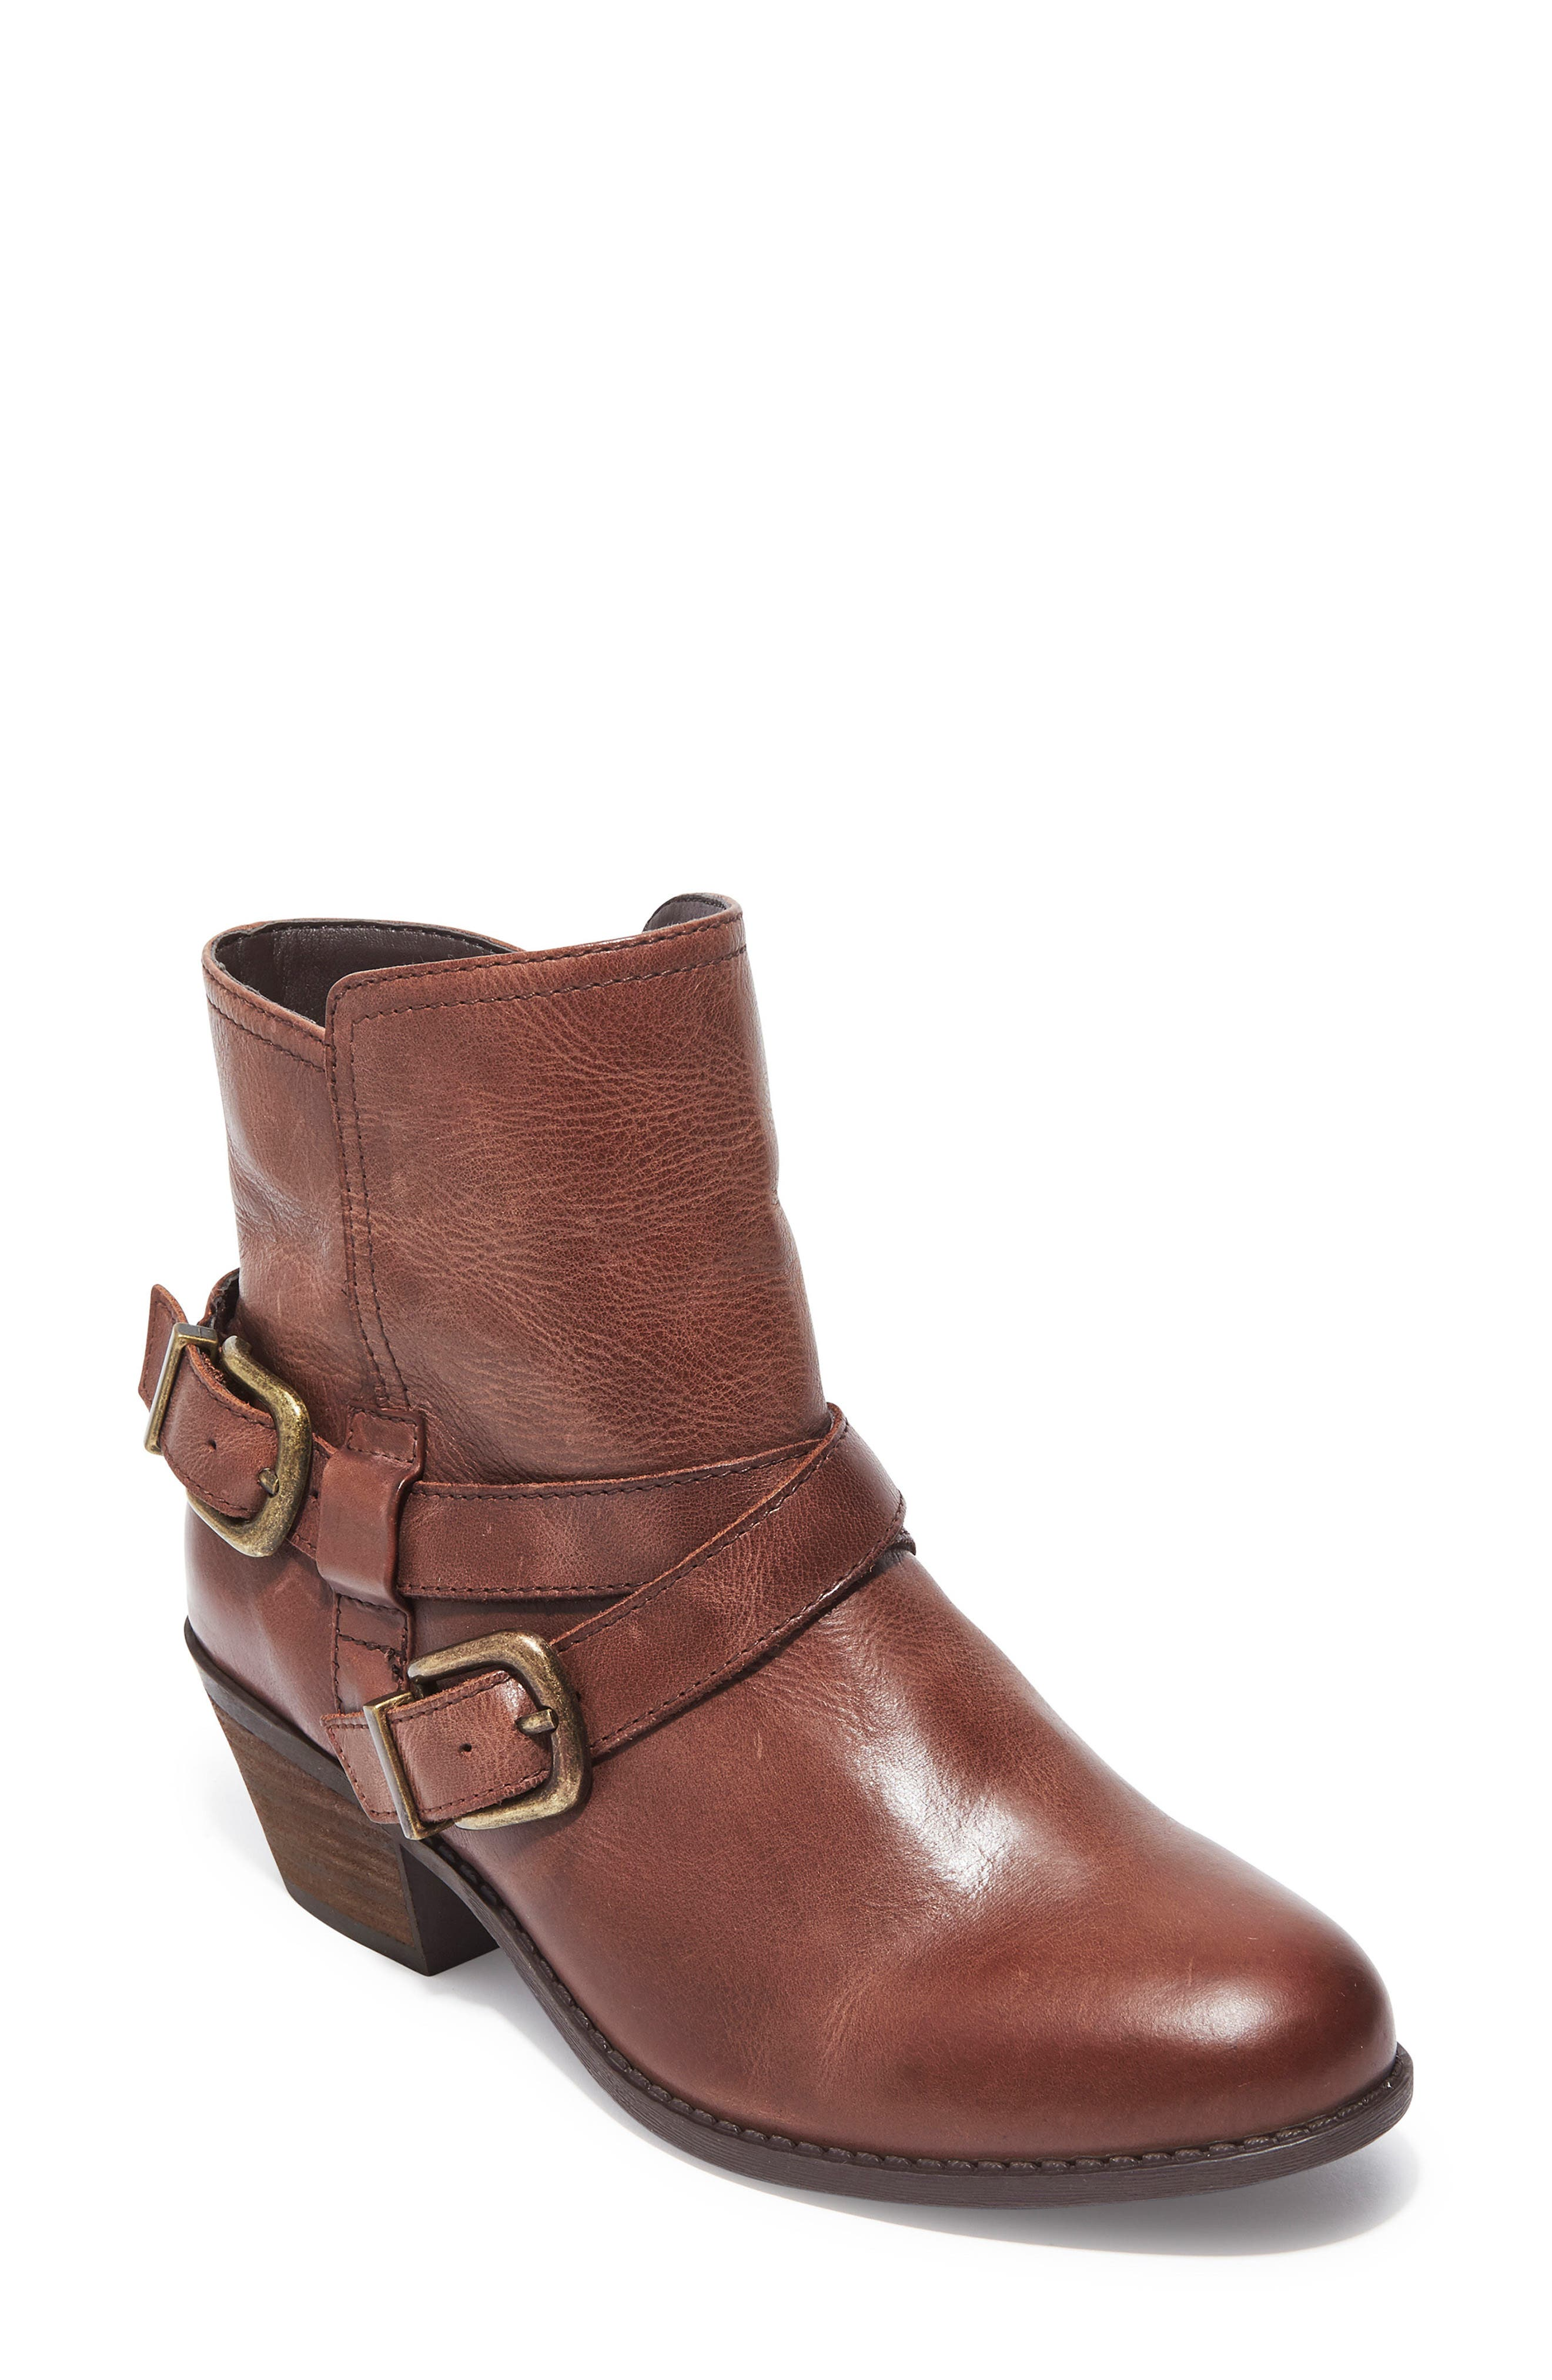 Zuri Buckle Boot,                         Main,                         color, Chocolate Leather